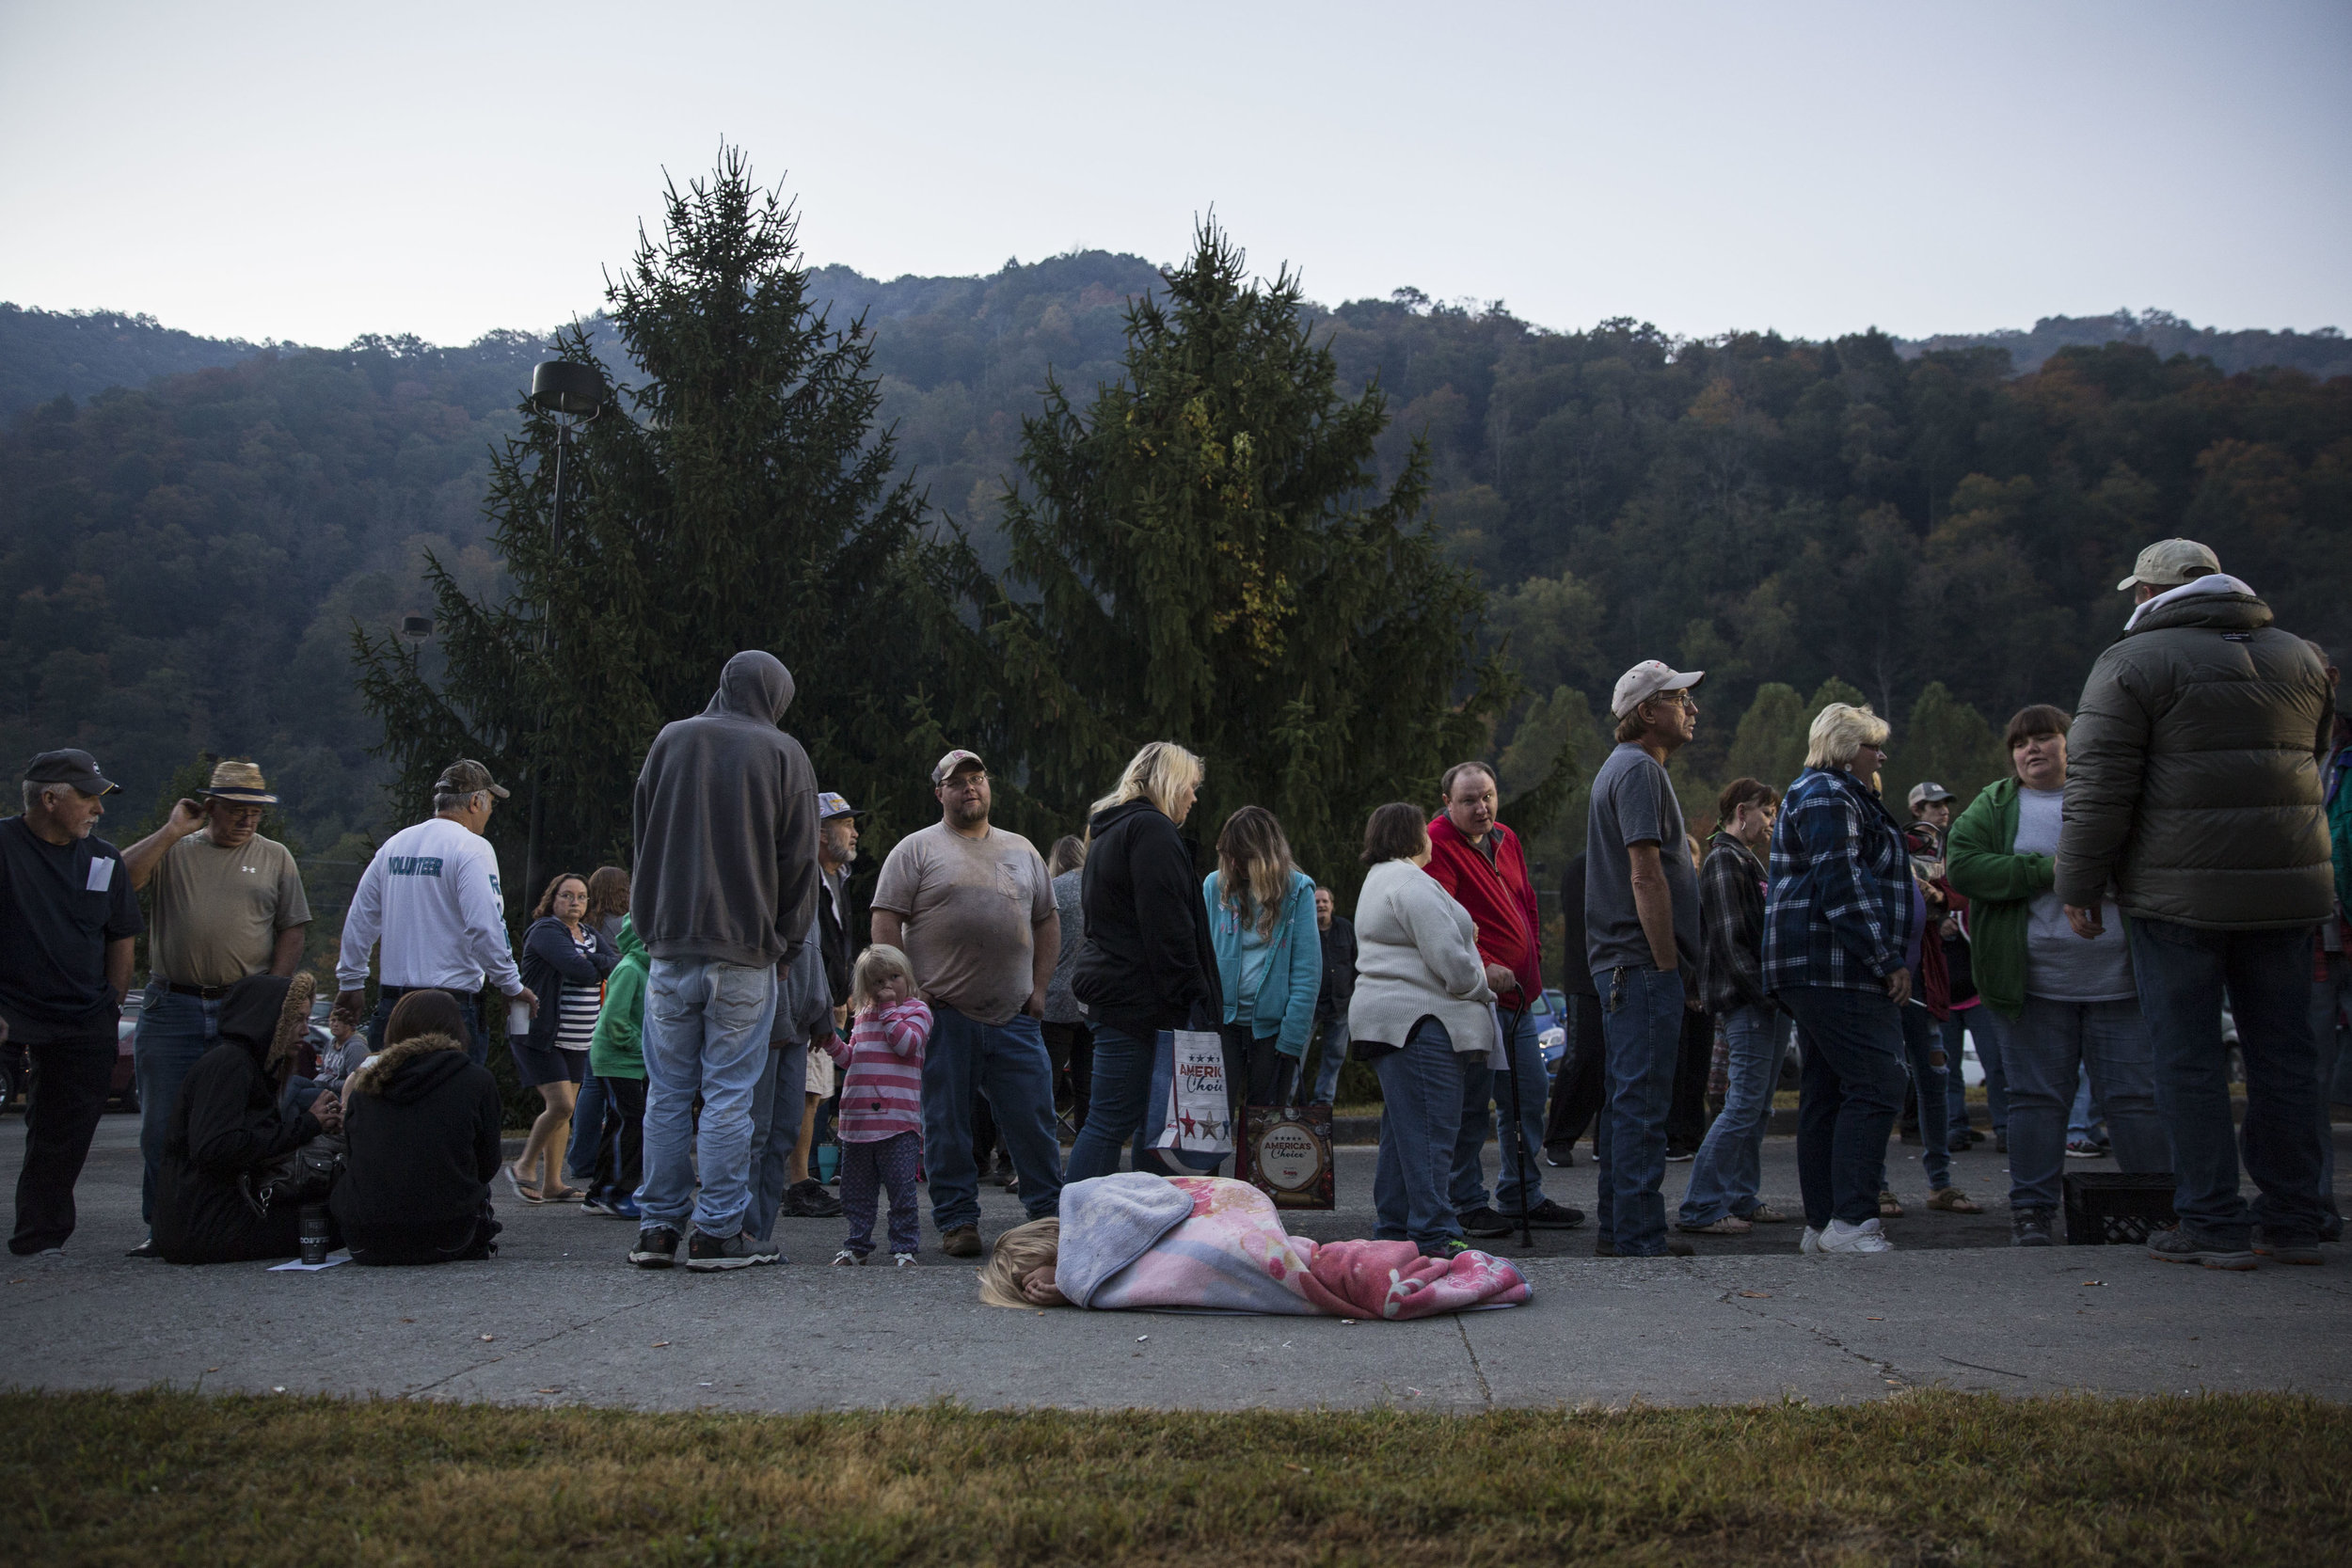 People wait to enter the Remote Area Medical (RAM) mobile clinic in Grundy, Virginia, which provided free general health services to uninsured and underinsured people in remote areas of the US.